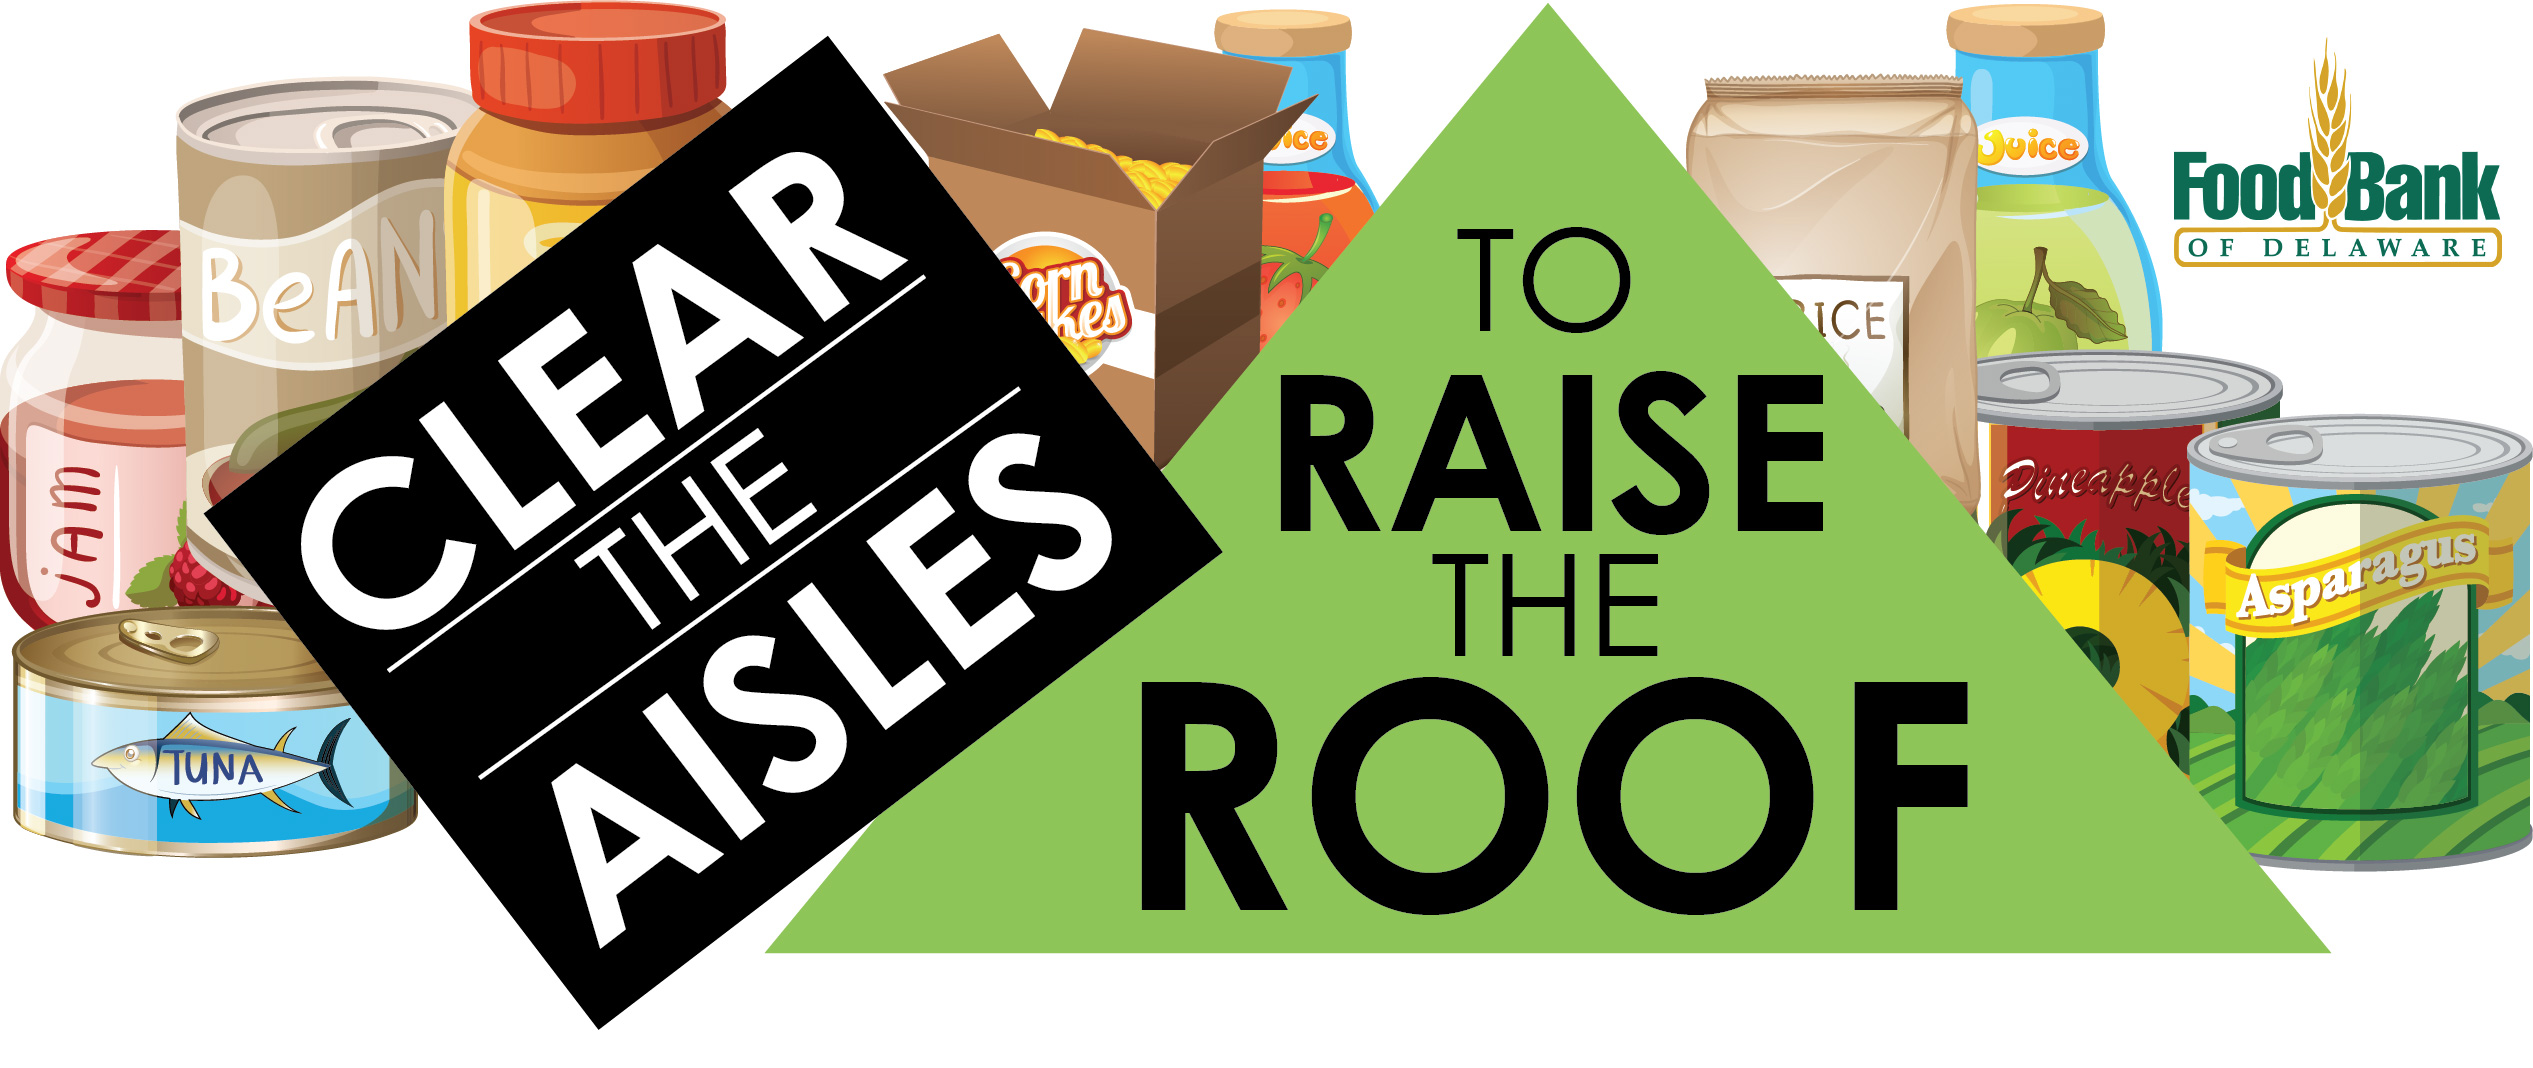 Clear The Aisles To Raise The Roof Food Bank Of Delaware